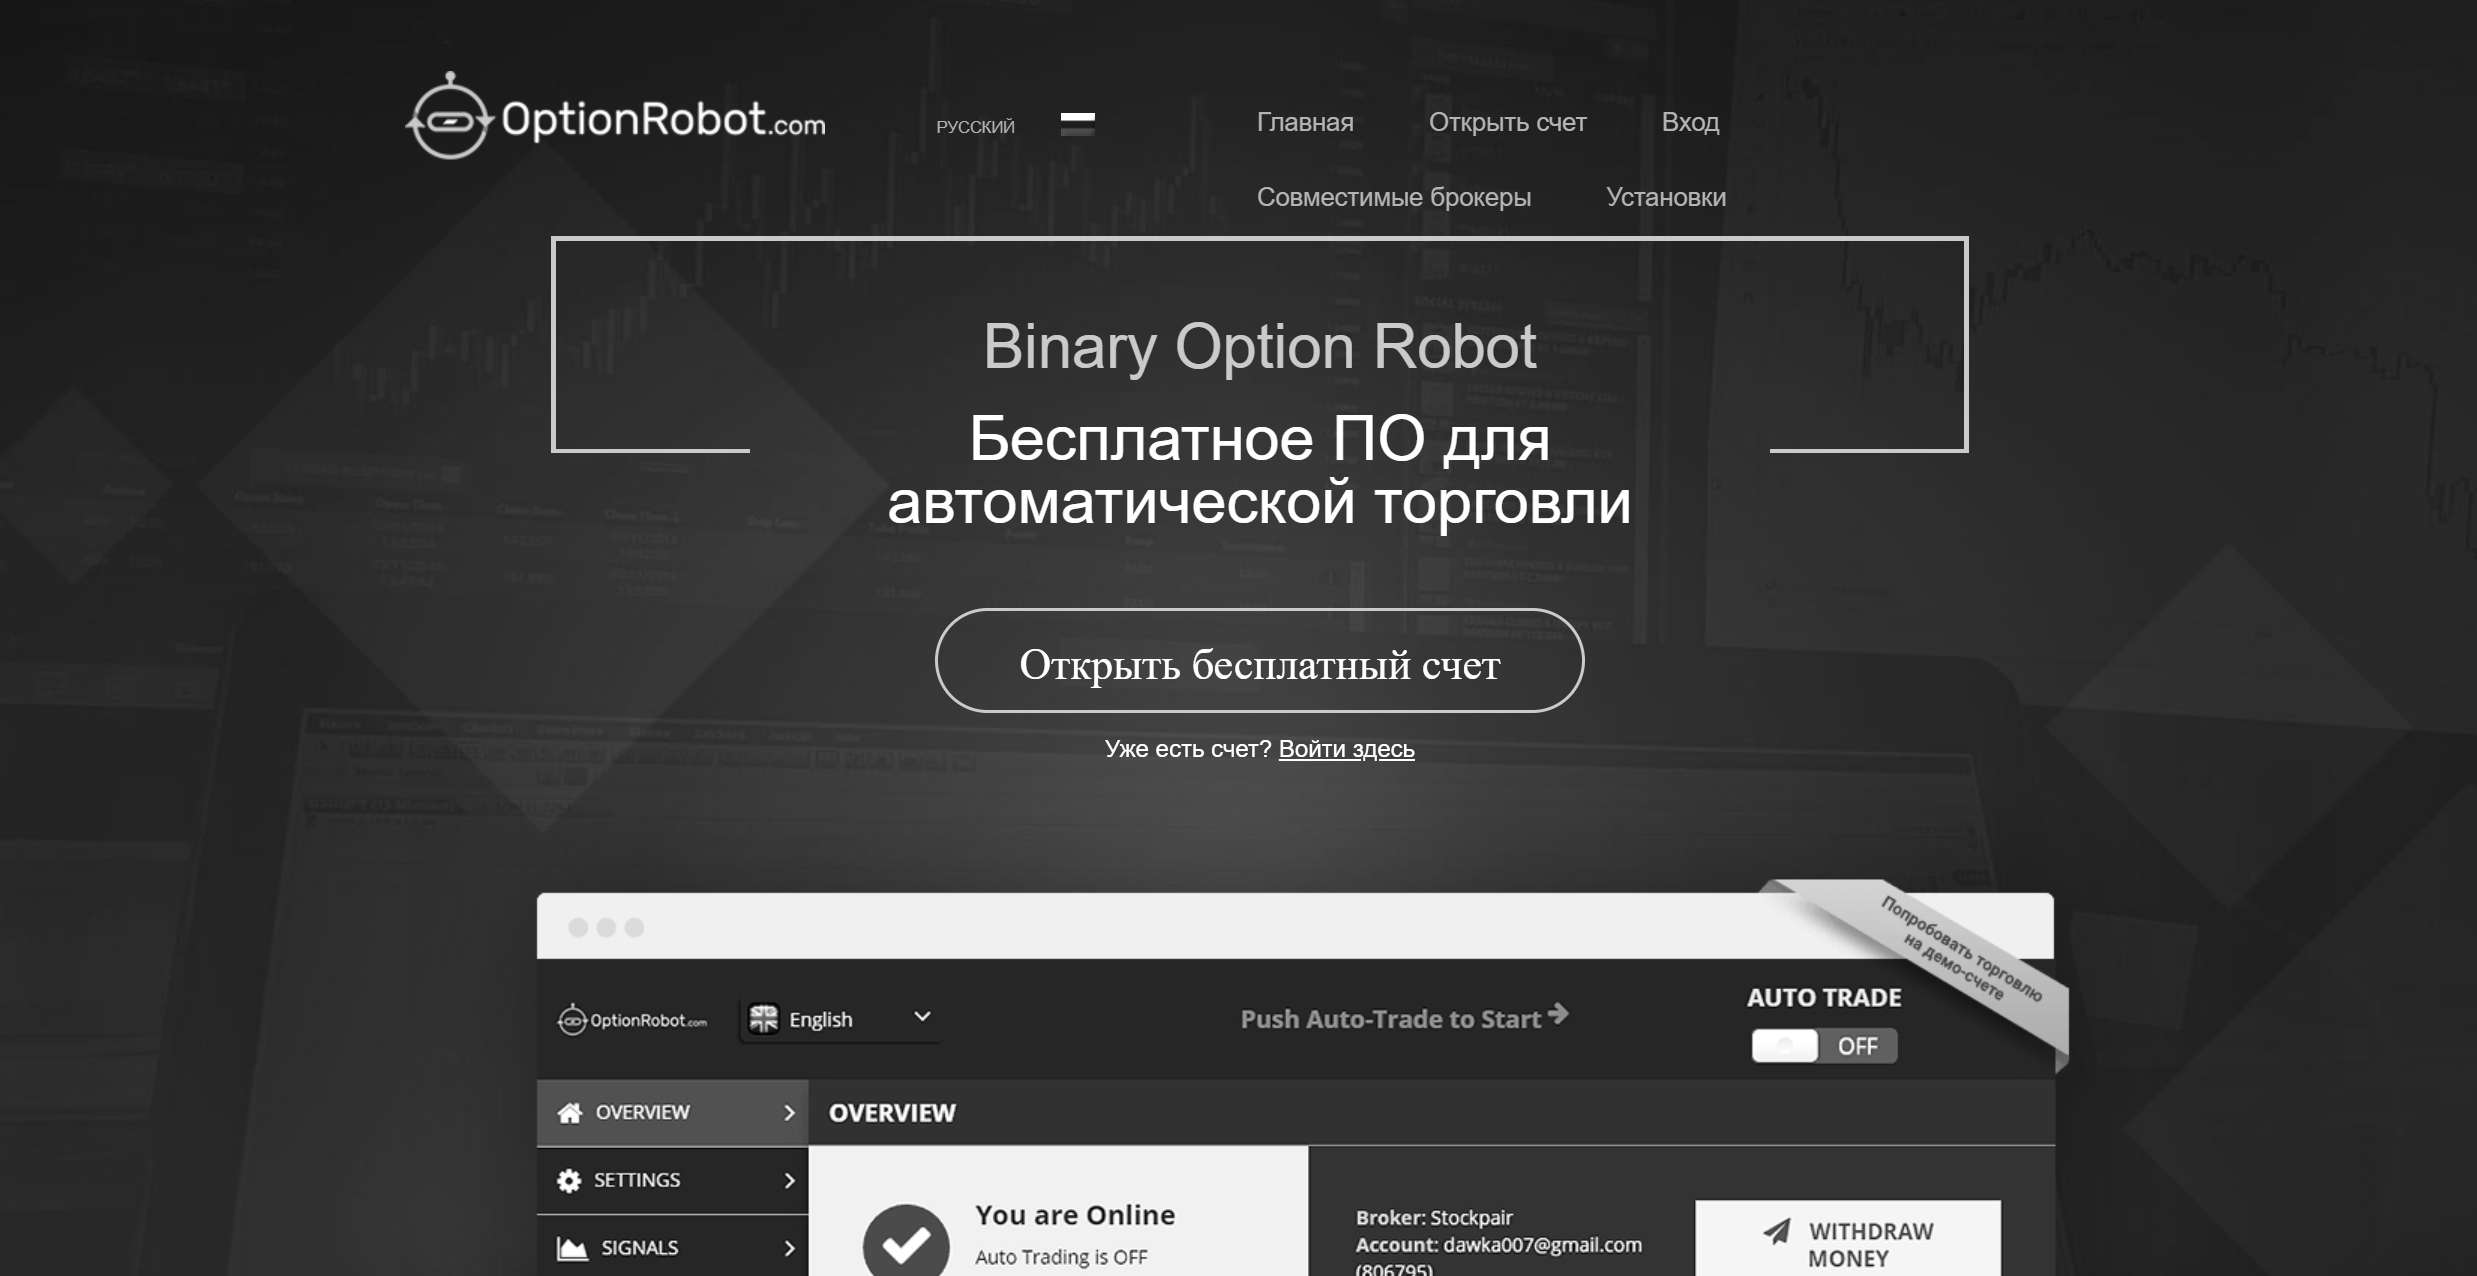 OptionRobot - обзор робота по сливу вашего депозита.